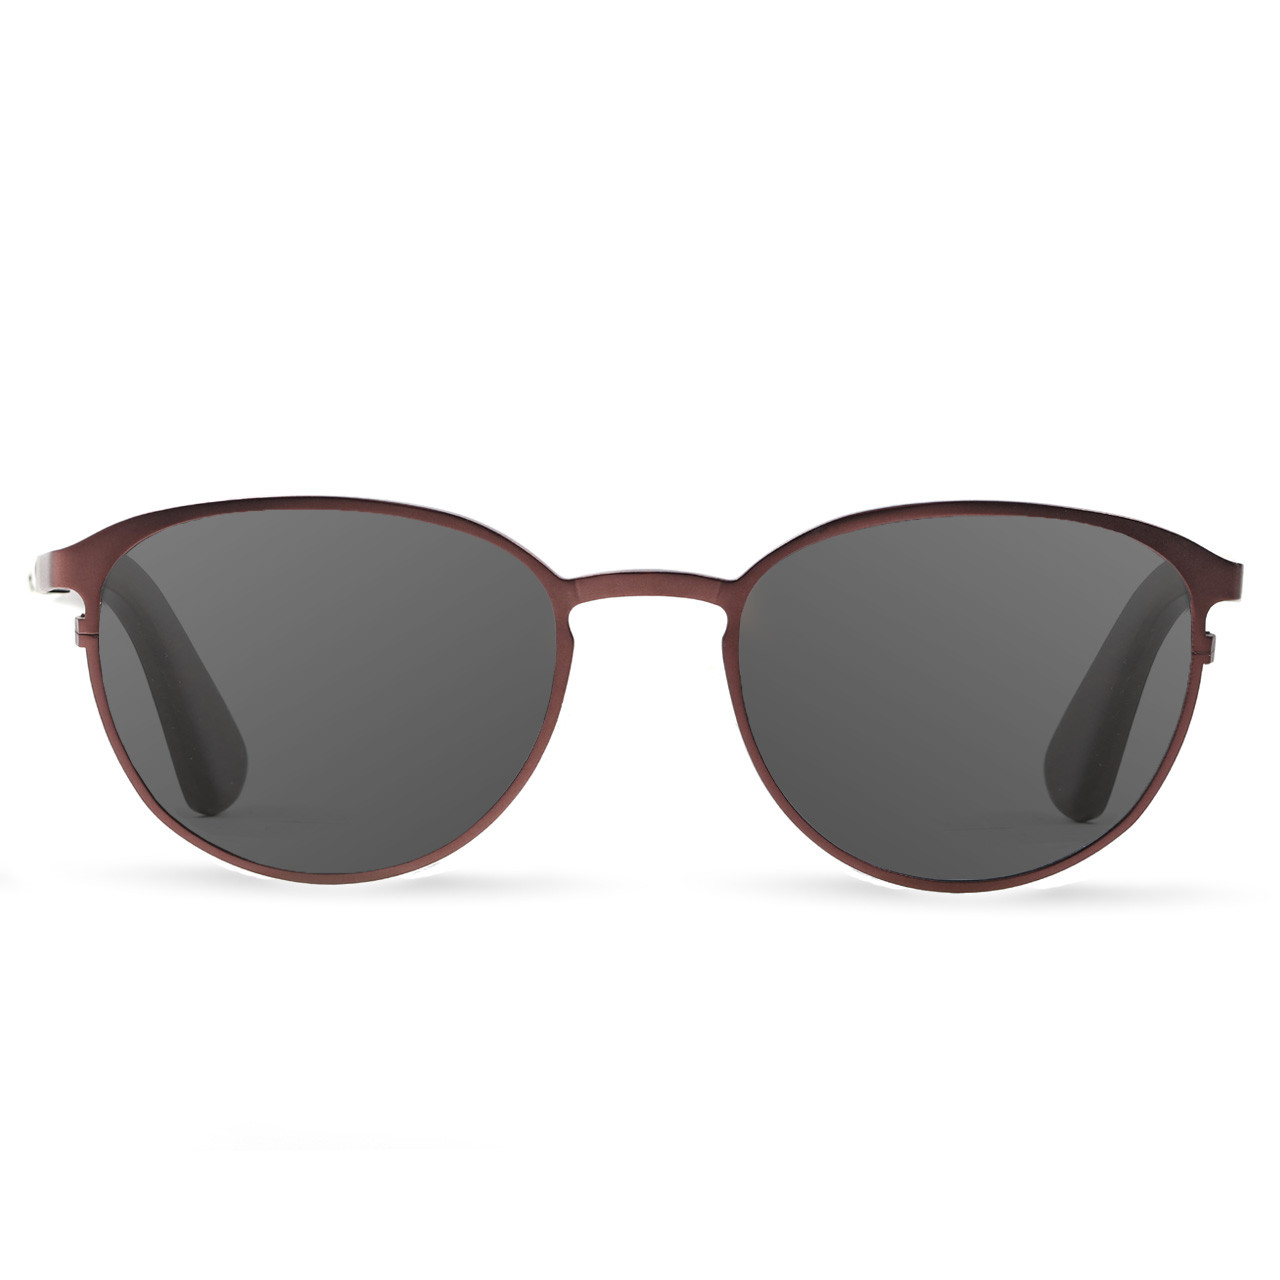 Atlas Crimson Titanium Frame Wood Sunglasses | Tmbr.